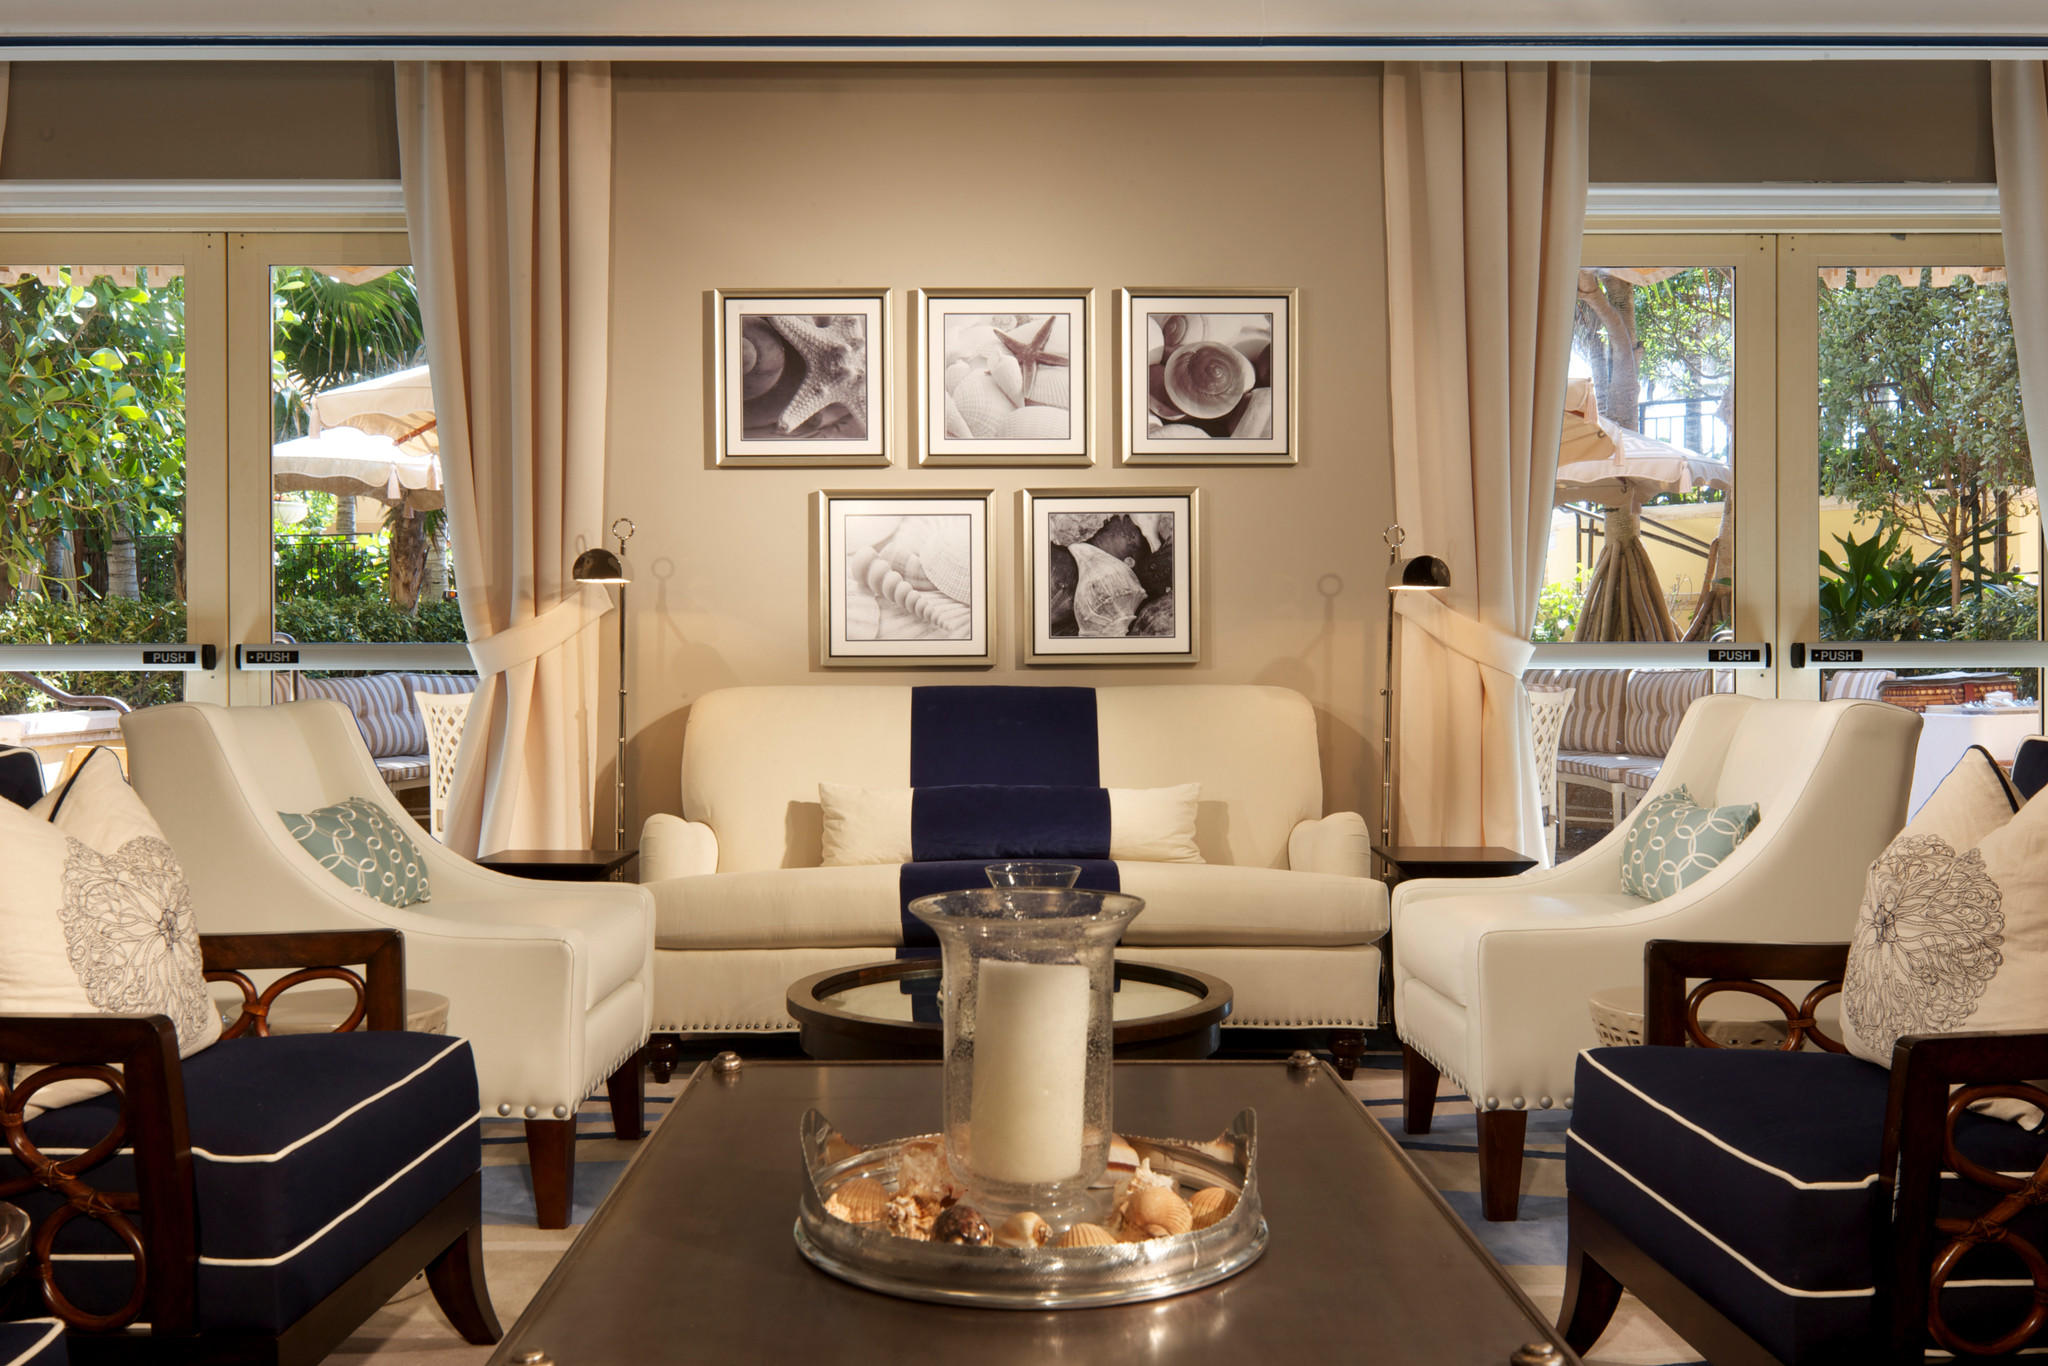 A view of the exclusive, members-only La Coquille Club room at Eau Palm Beach Resort & Spa in Manalapan. Fla.